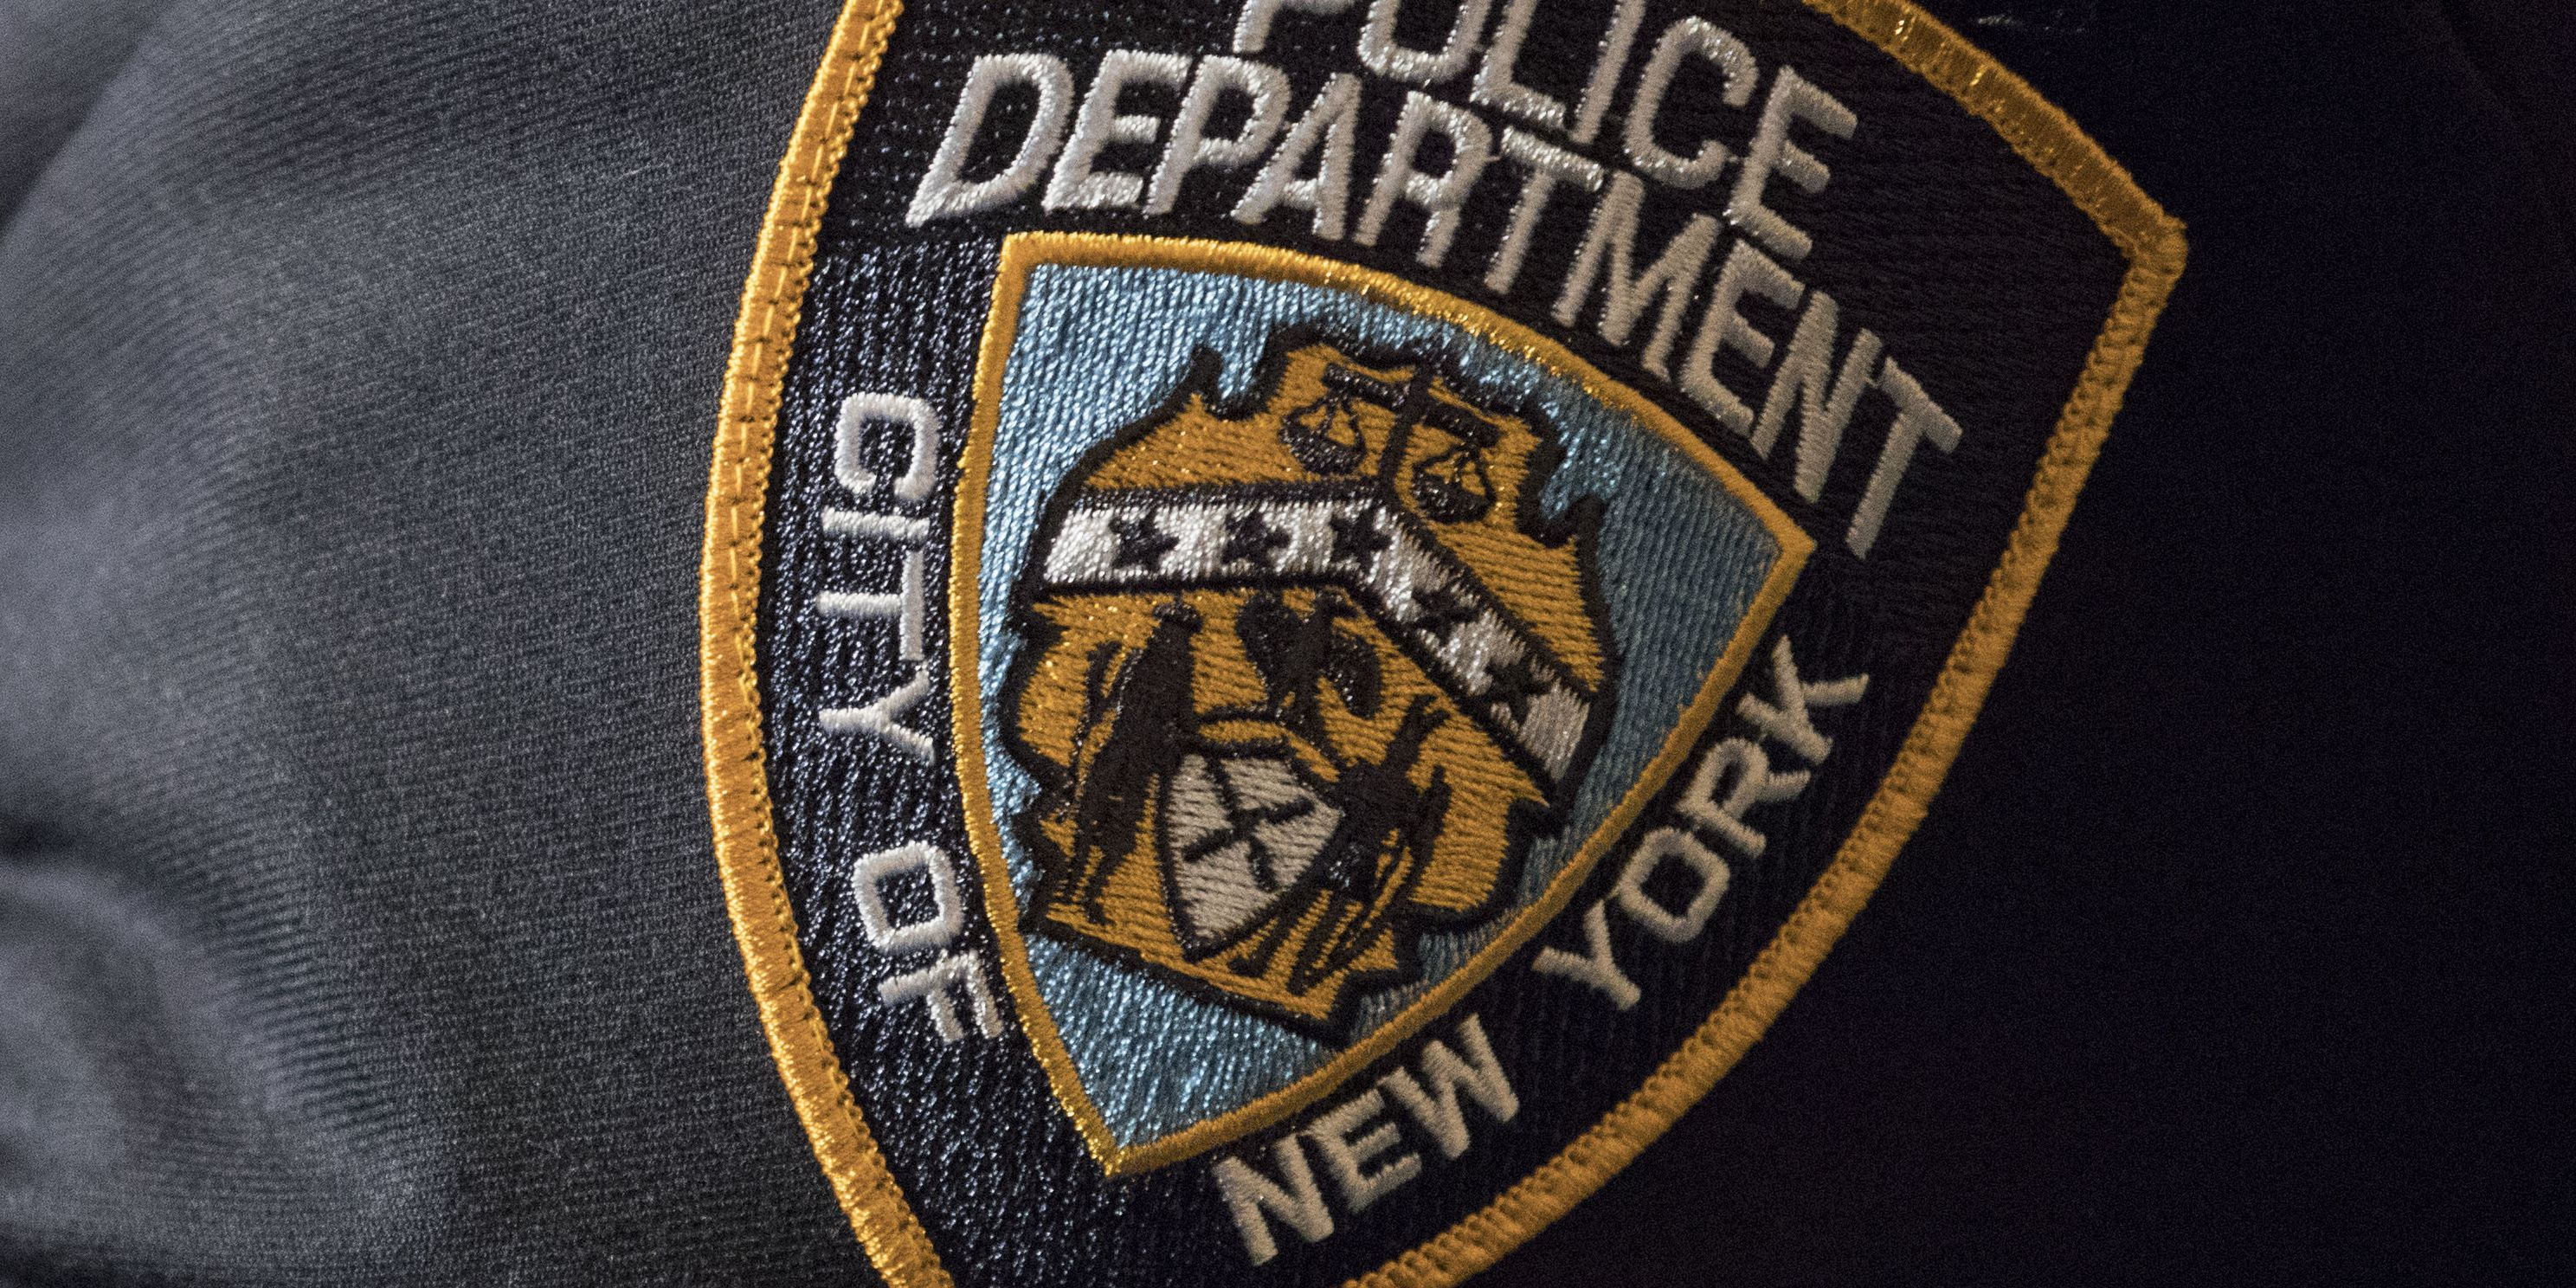 NYPD kept database of juveniles' fingerprints, violating law